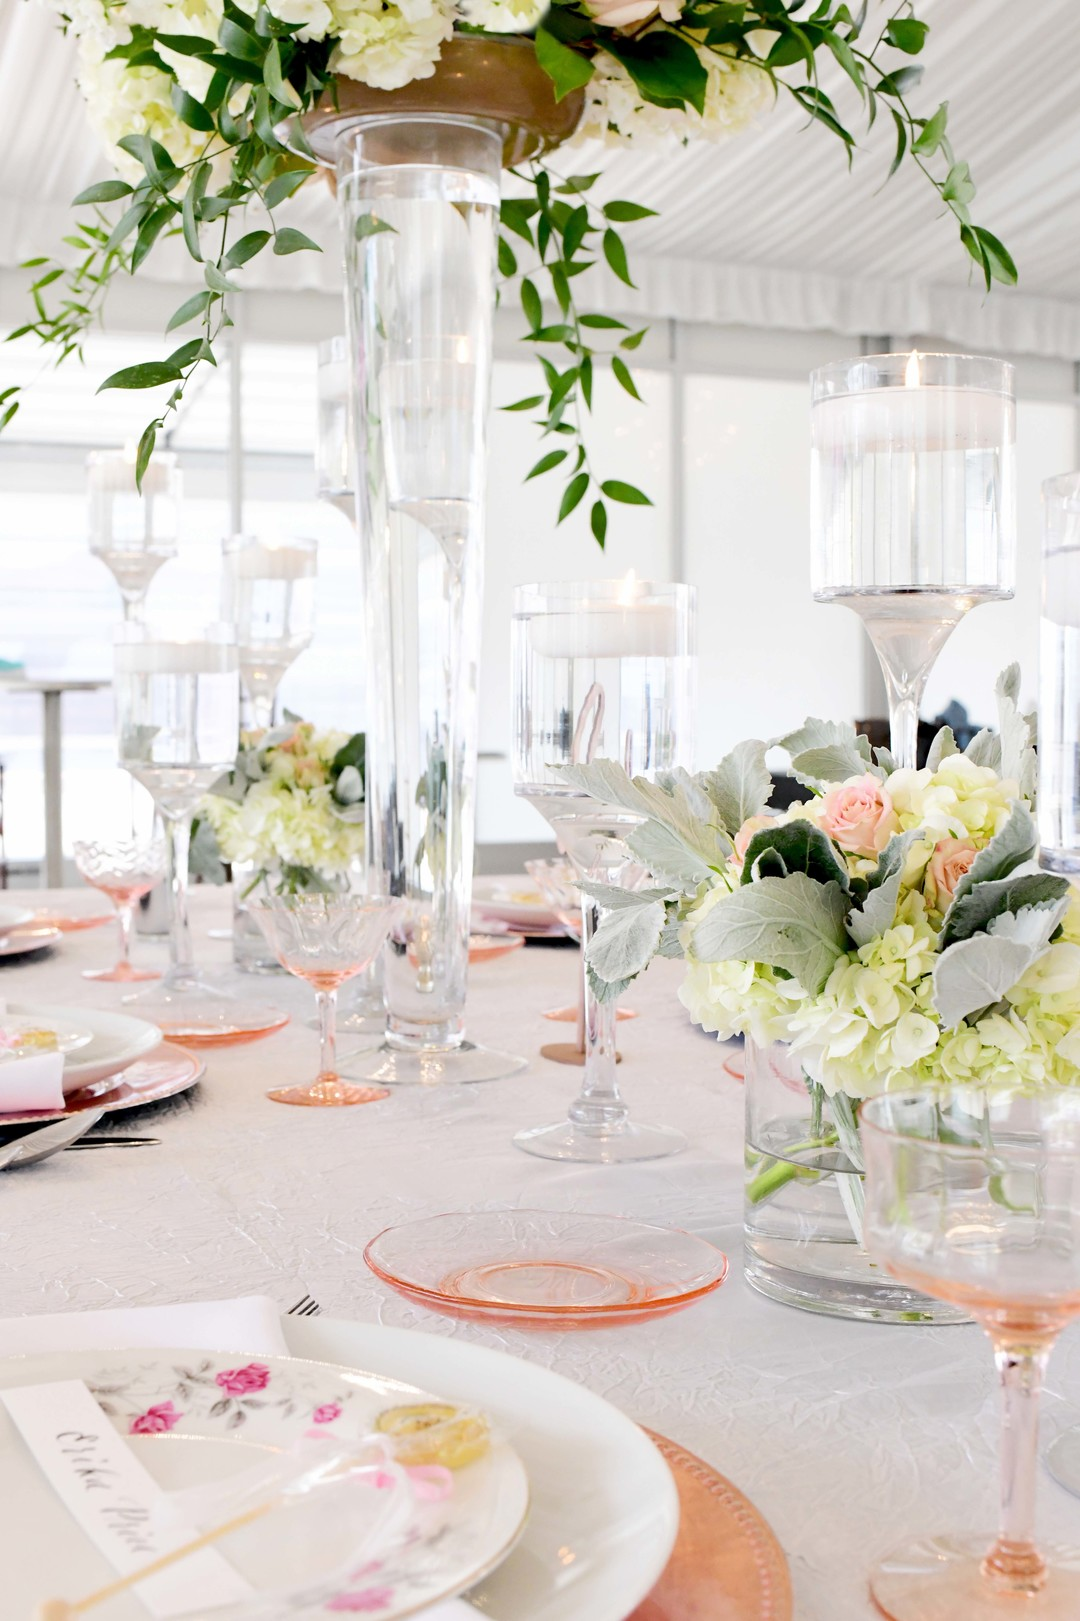 Wedding reception decor: Romantic ivory and rose gold wedding inspiration captured by Lori Sapio. See more elegant wedding ideas at CHItheeWED.com!